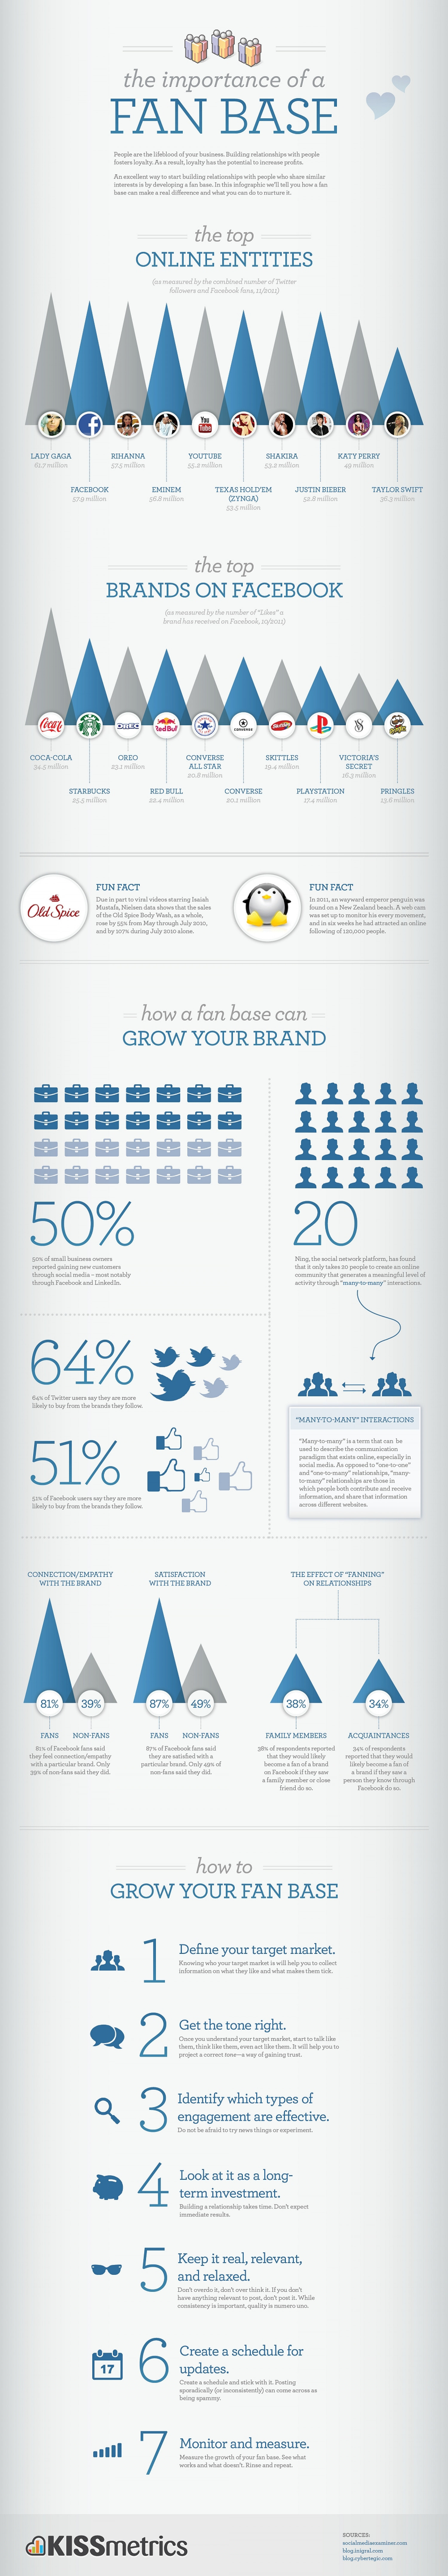 The Importance Of A Fan Base & How To Grow One Infographic